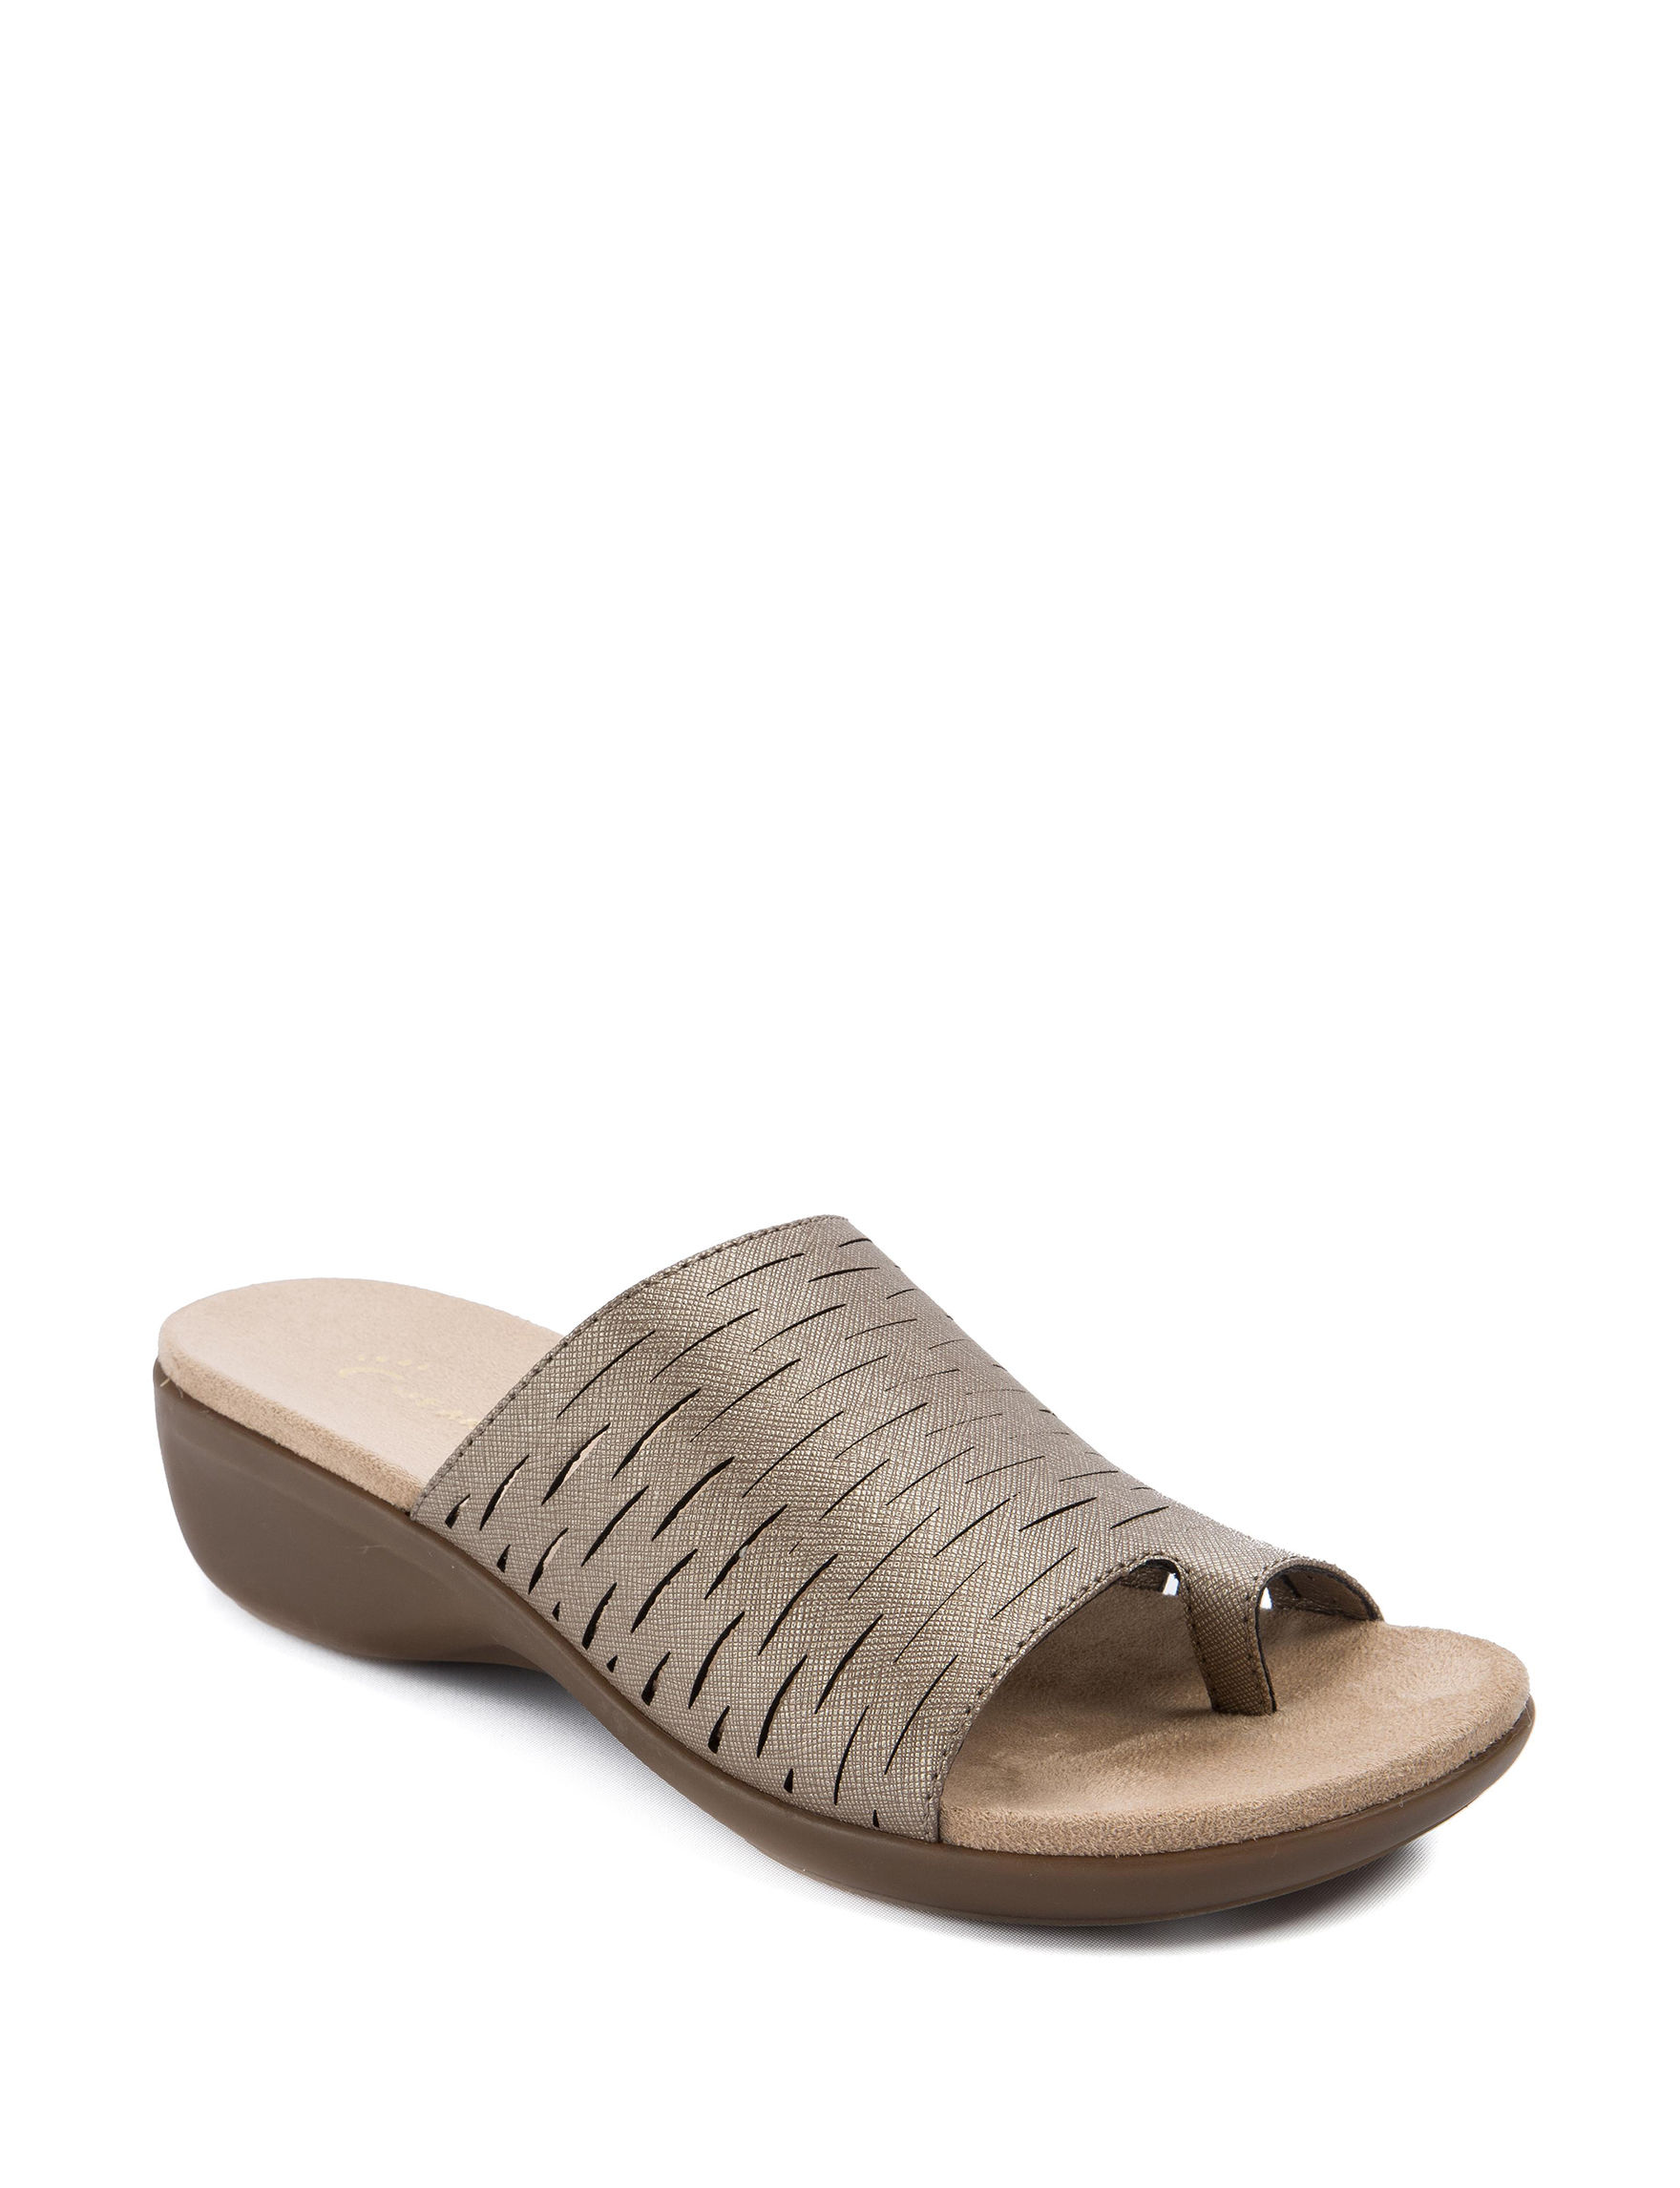 Wear. Ever. Champagne Flat Sandals Footbed